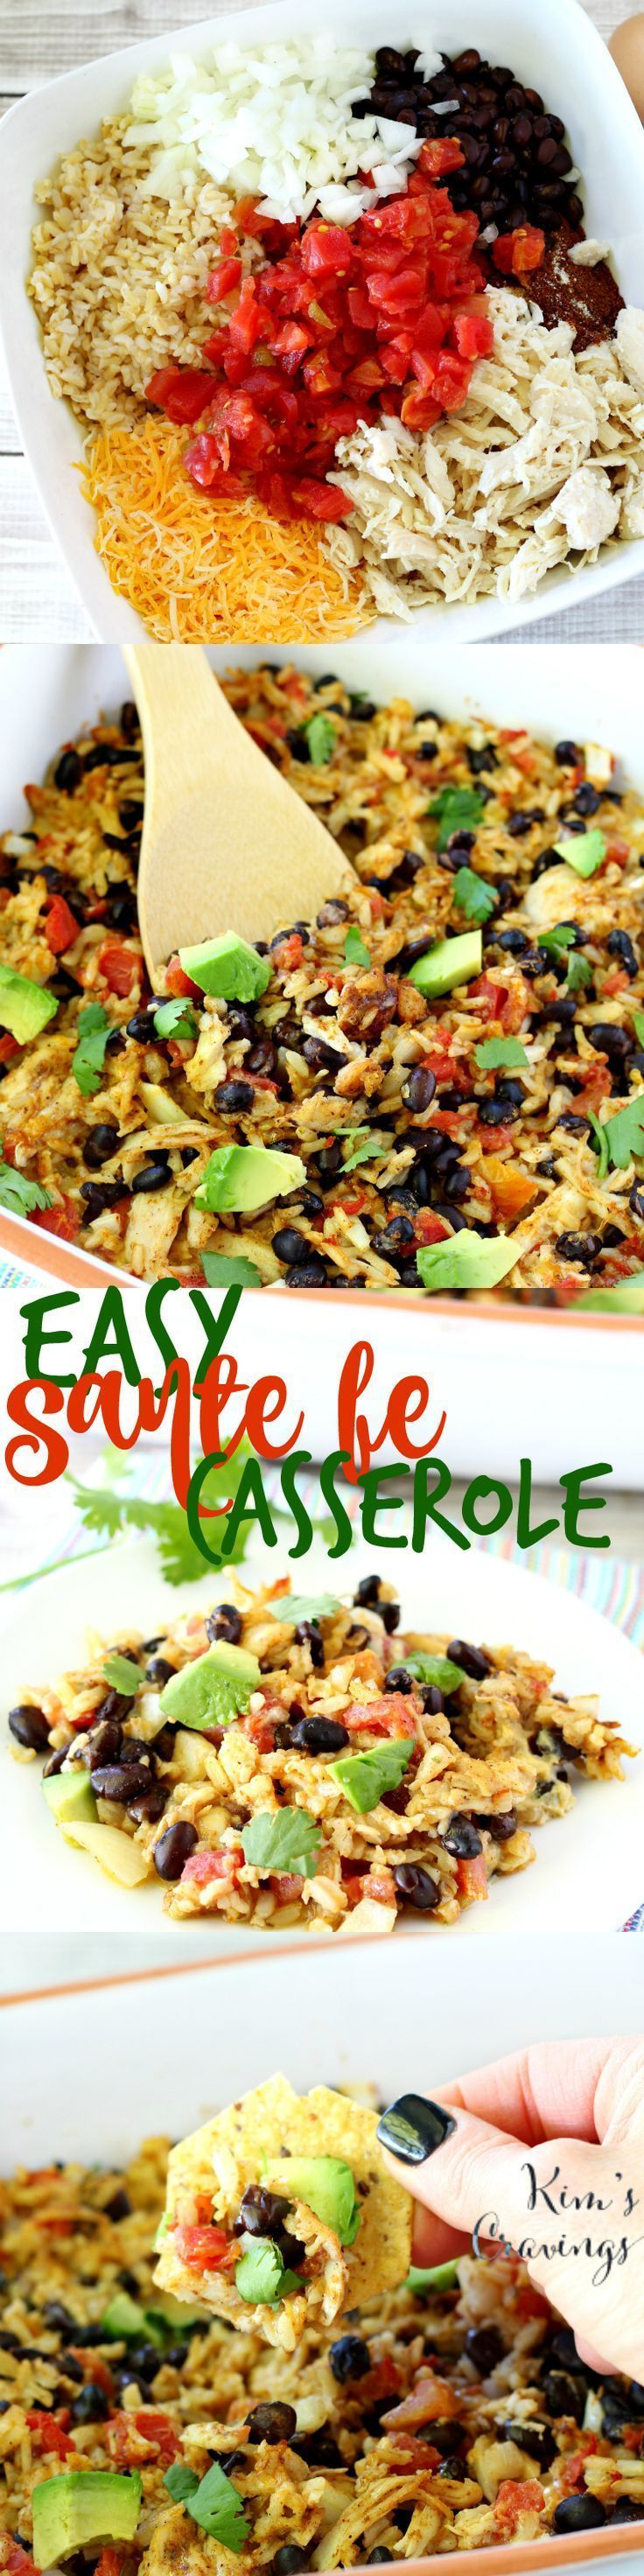 Hands down, the easiest, most flavorful, crowd-pleasing dish- this Santa Fe Casserole will have you in and out of the kitchen in a flash! #YesYouCan [ad]